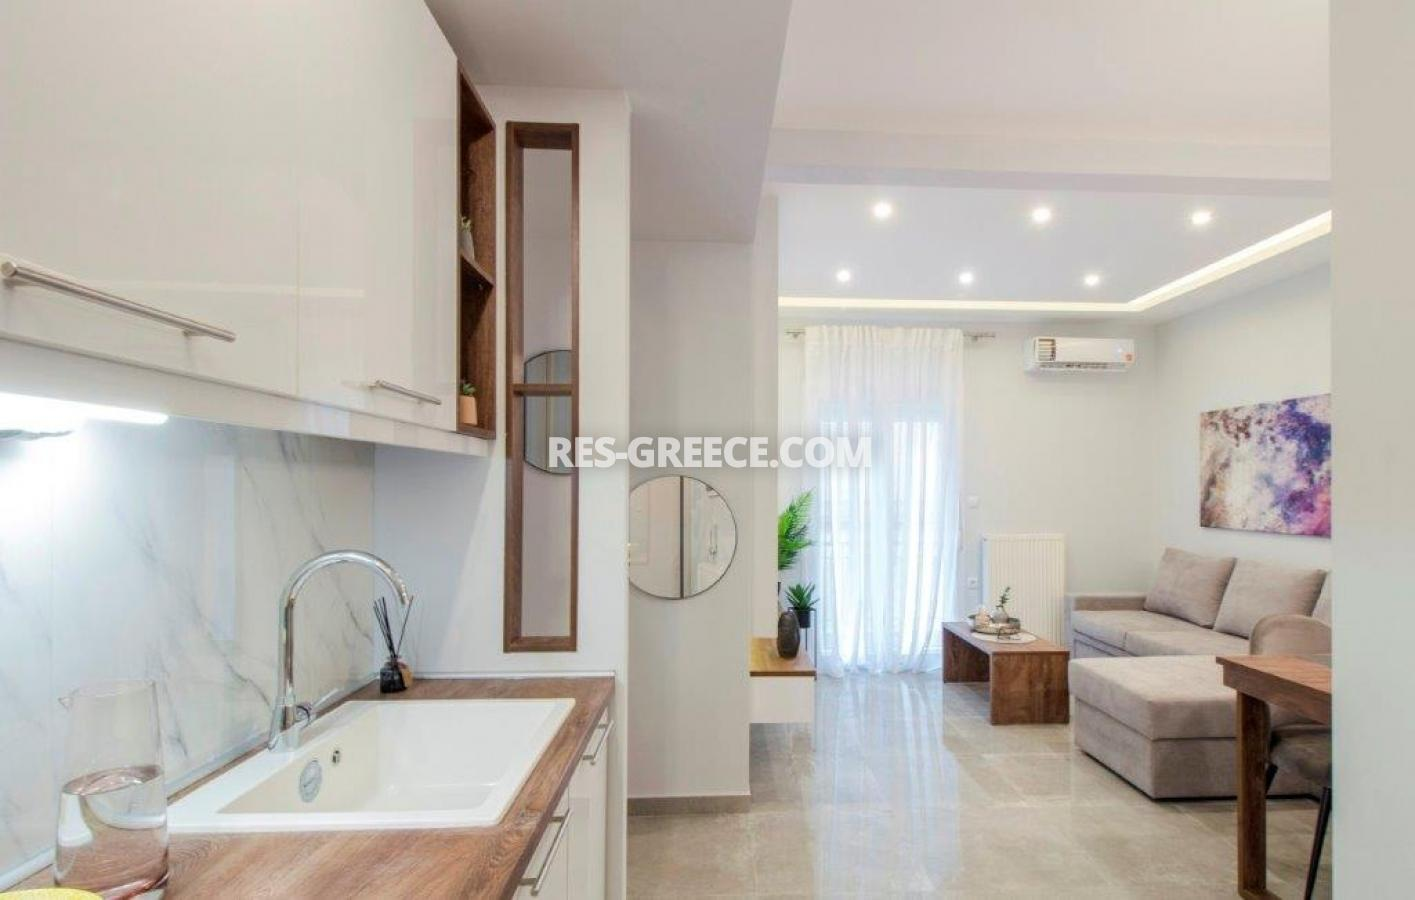 Kontogouri, Central Macedonia, Greece - fully furnished and decorated apartment after full renovation near Nea Paralia - Photo 5